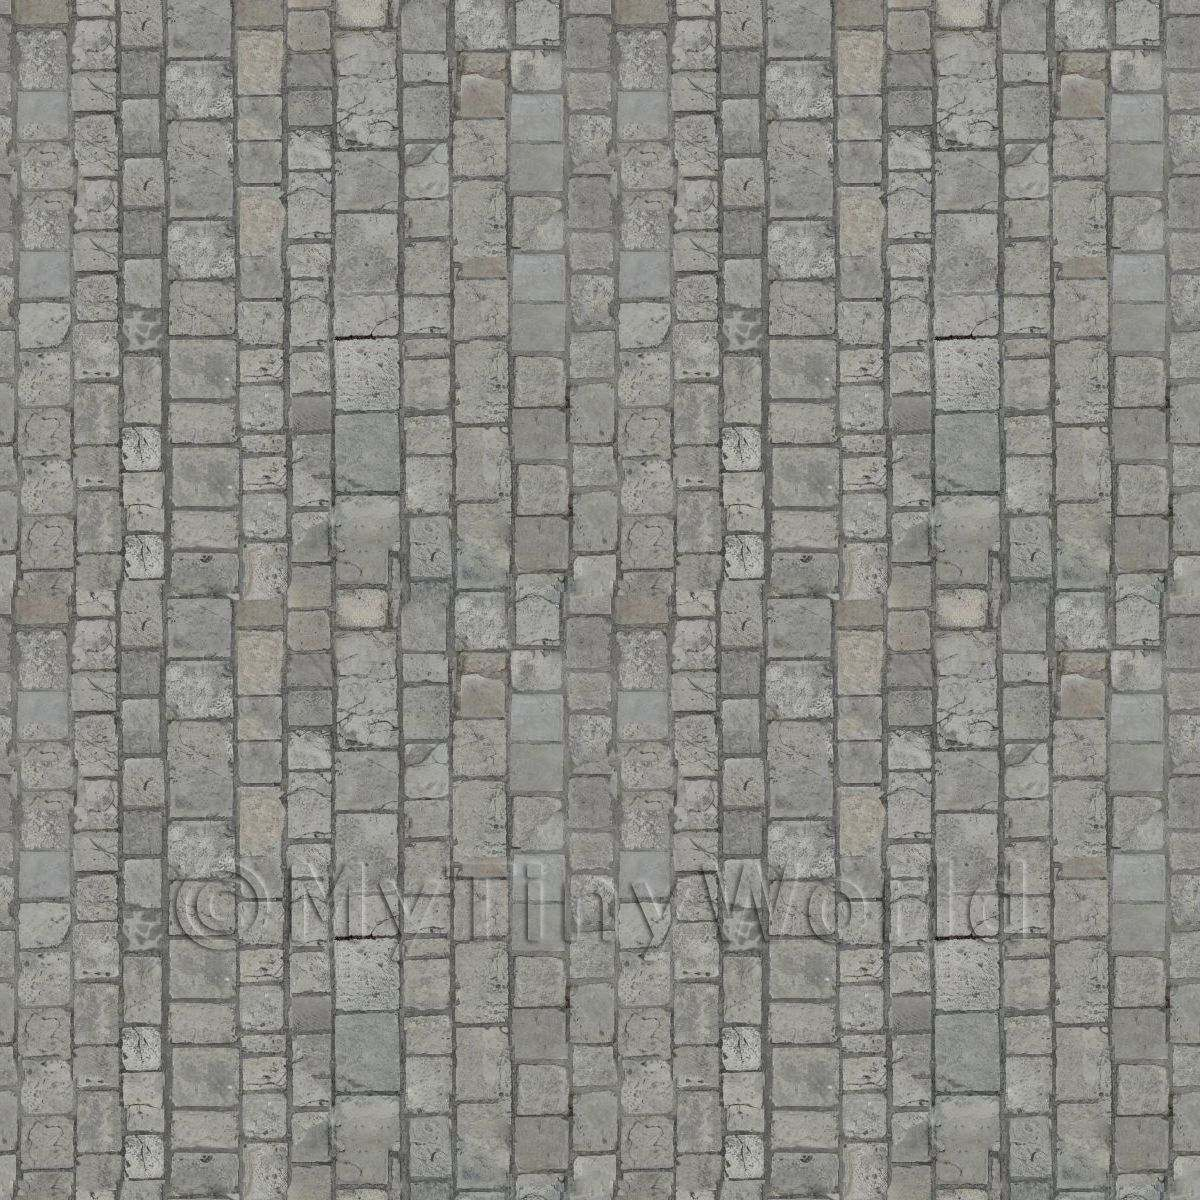 Dolls House Miniature Clean Granite Cobblestone Pattern Cladding